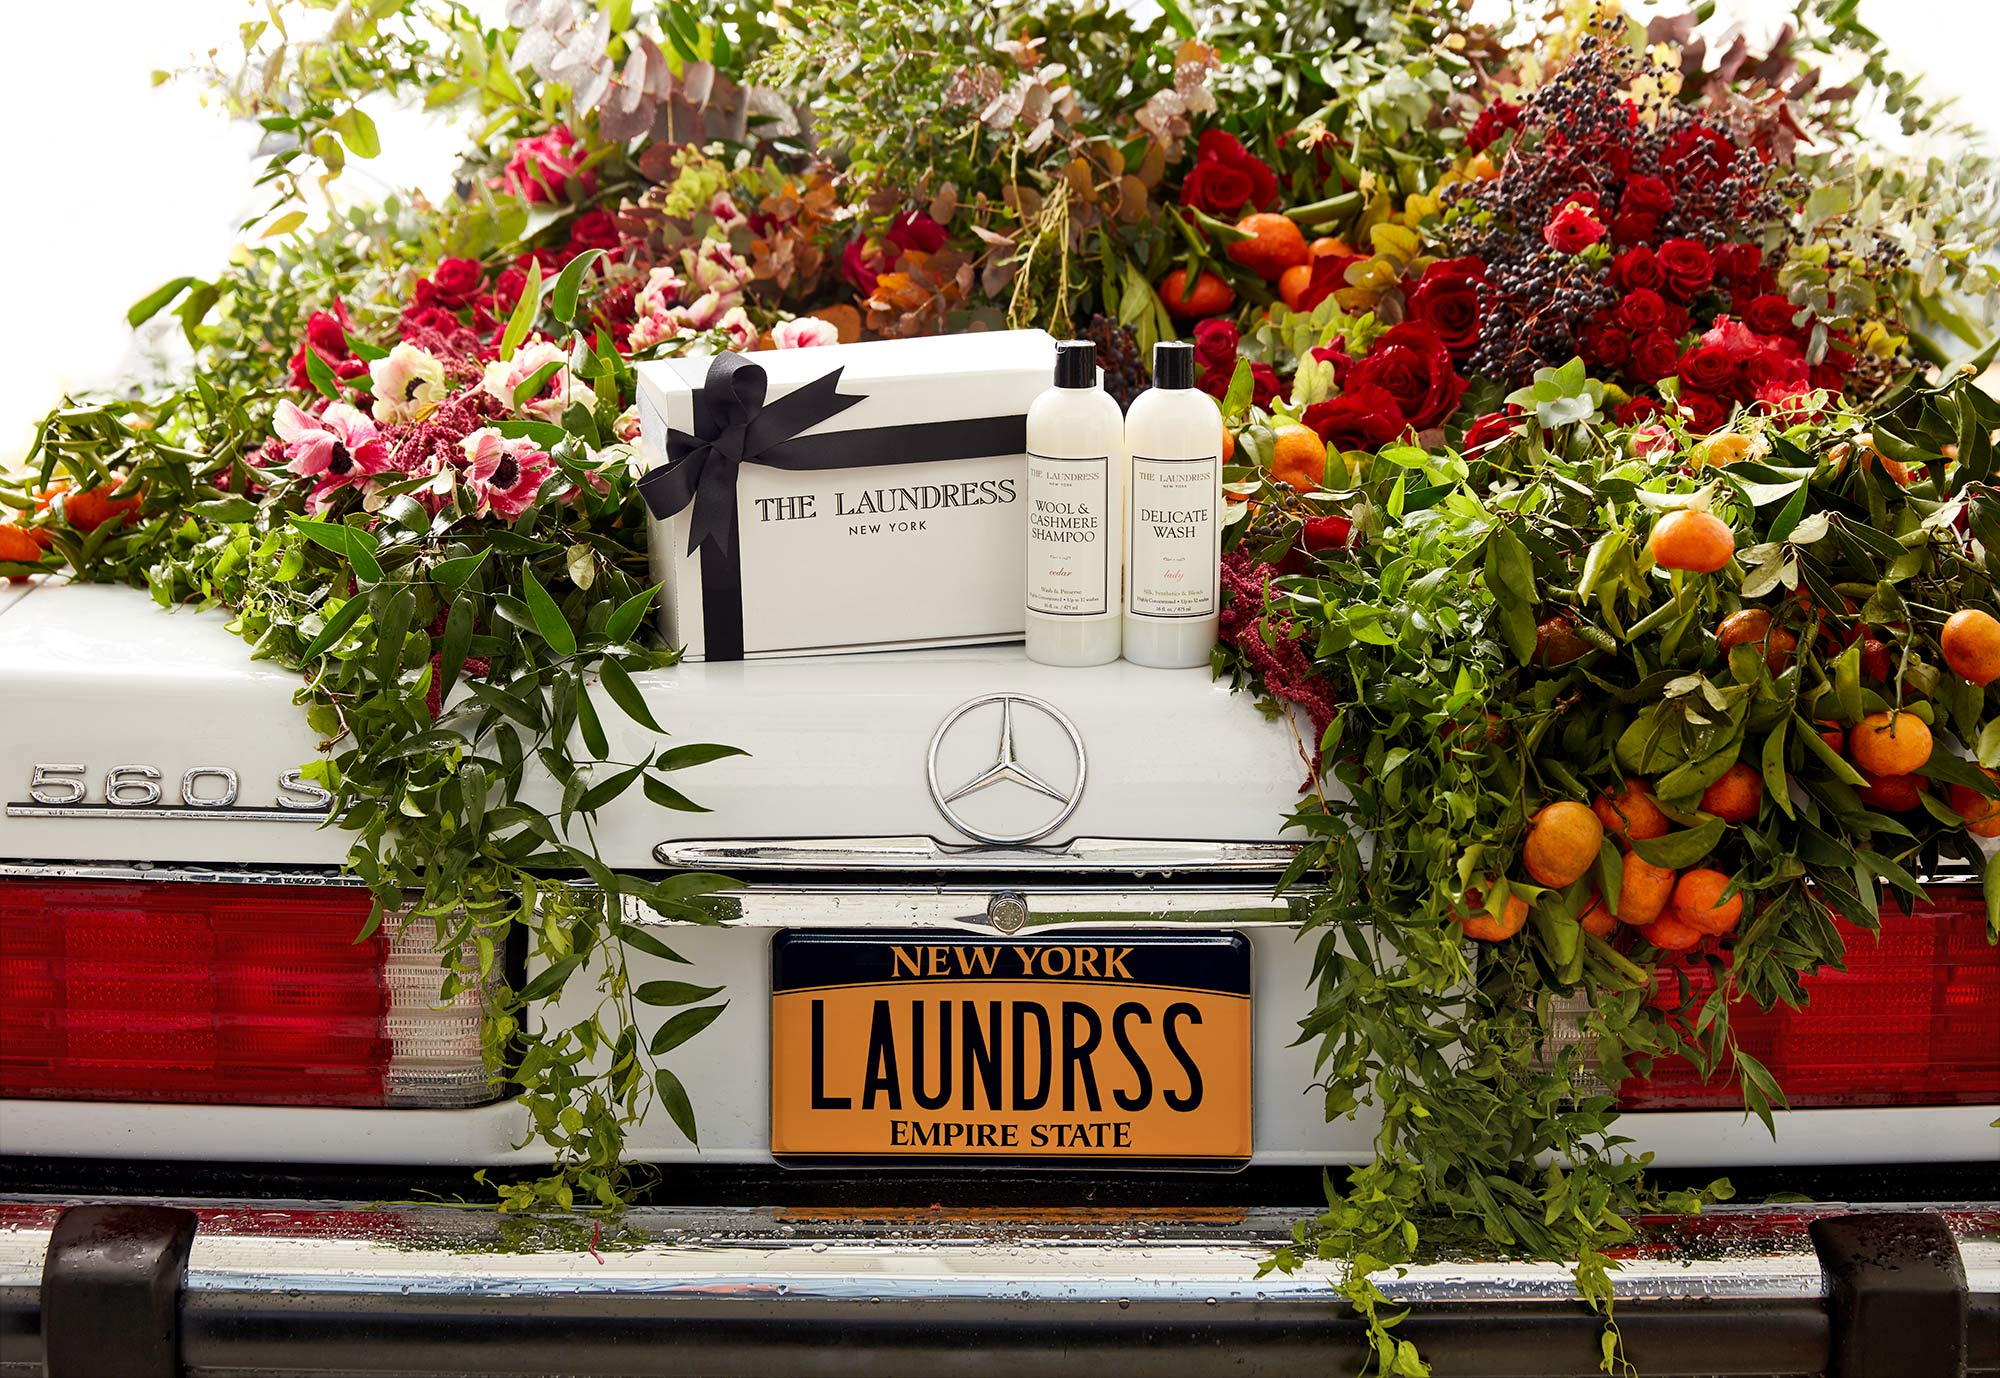 Laundress product on back of car with flowers